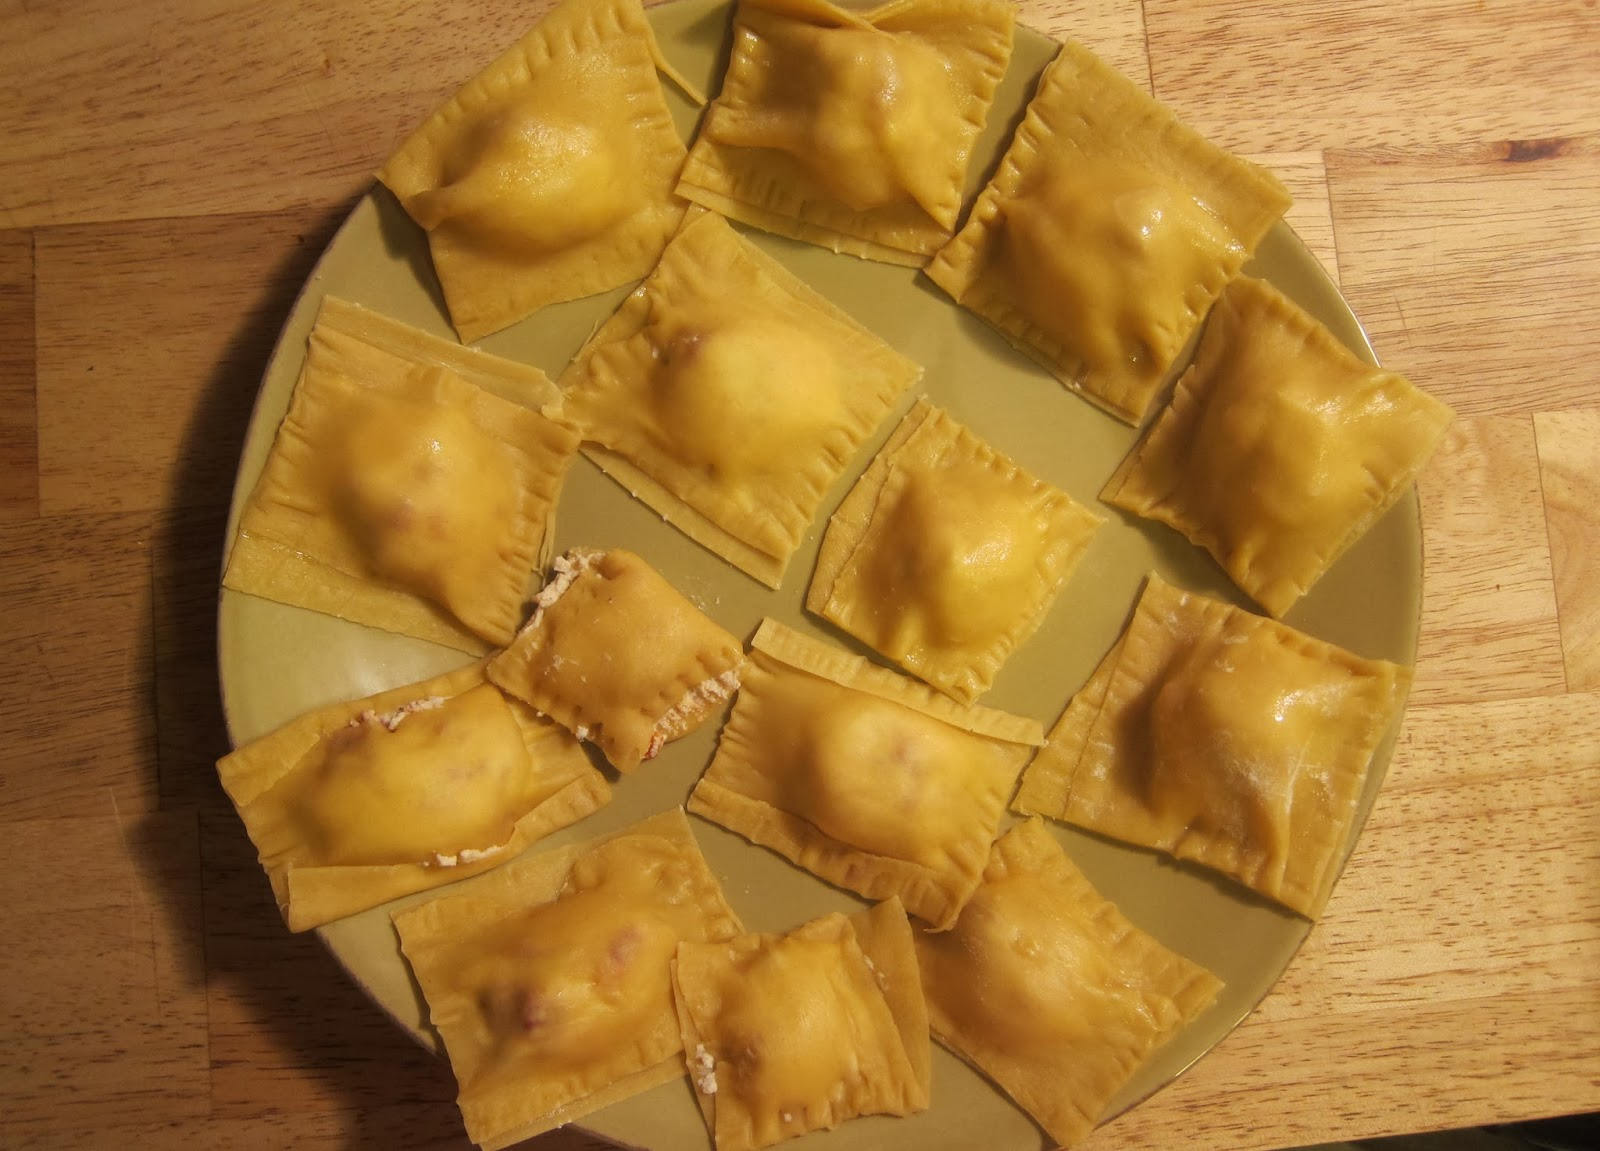 How to Make Homemade Ravioli | The Economical Eater